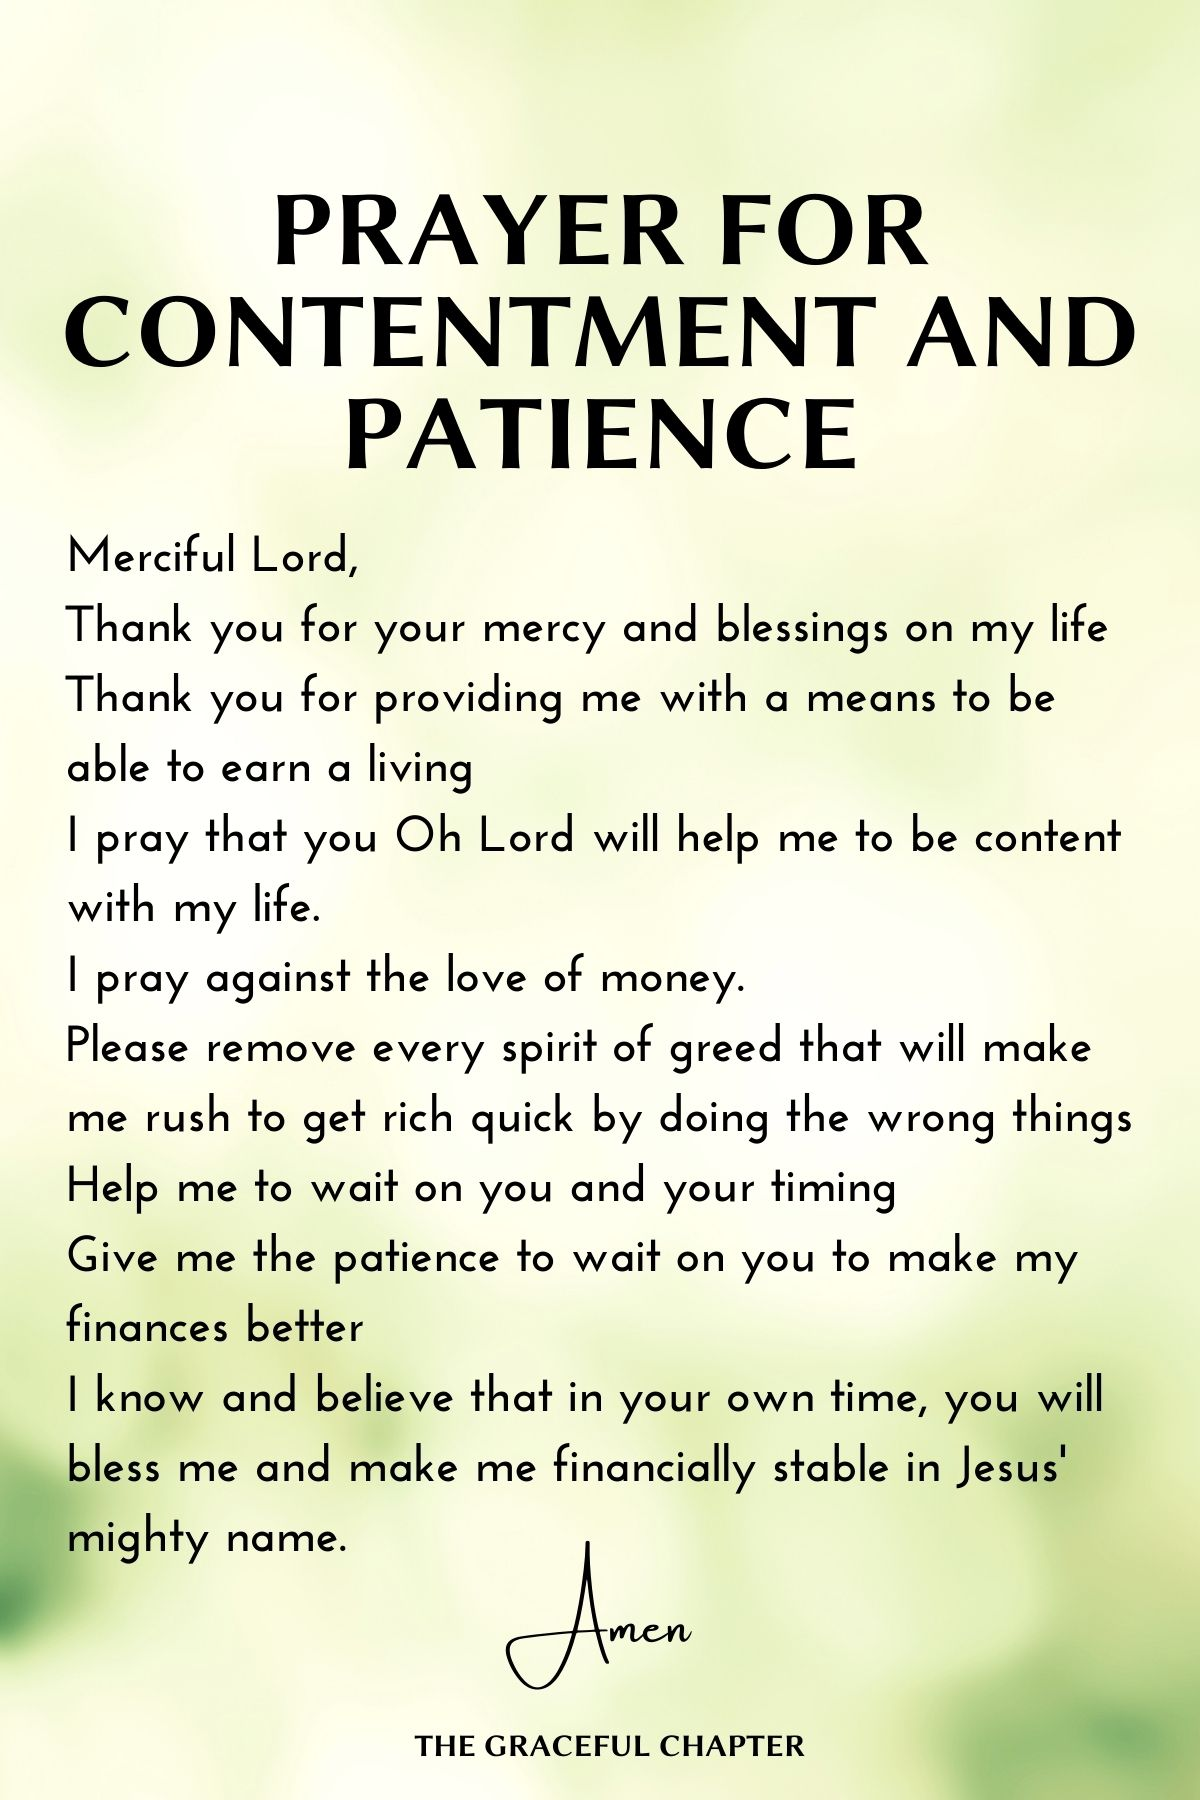 Prayer for contentment and patience